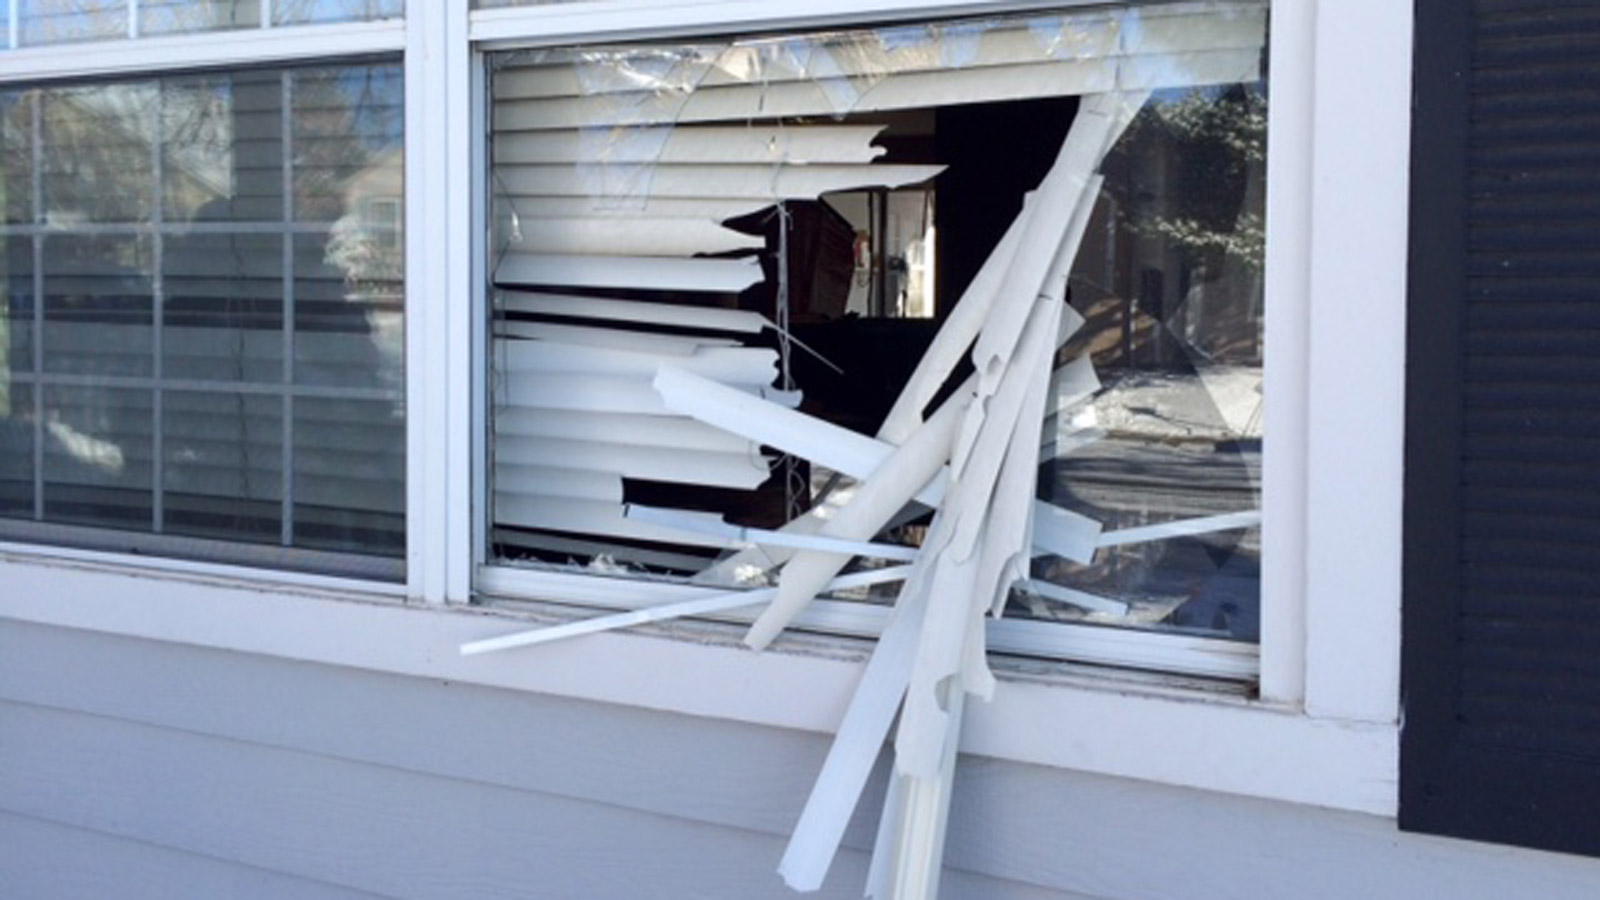 A broken window at an Arvada home where one or more of the arrests happened. (credit: CBS)